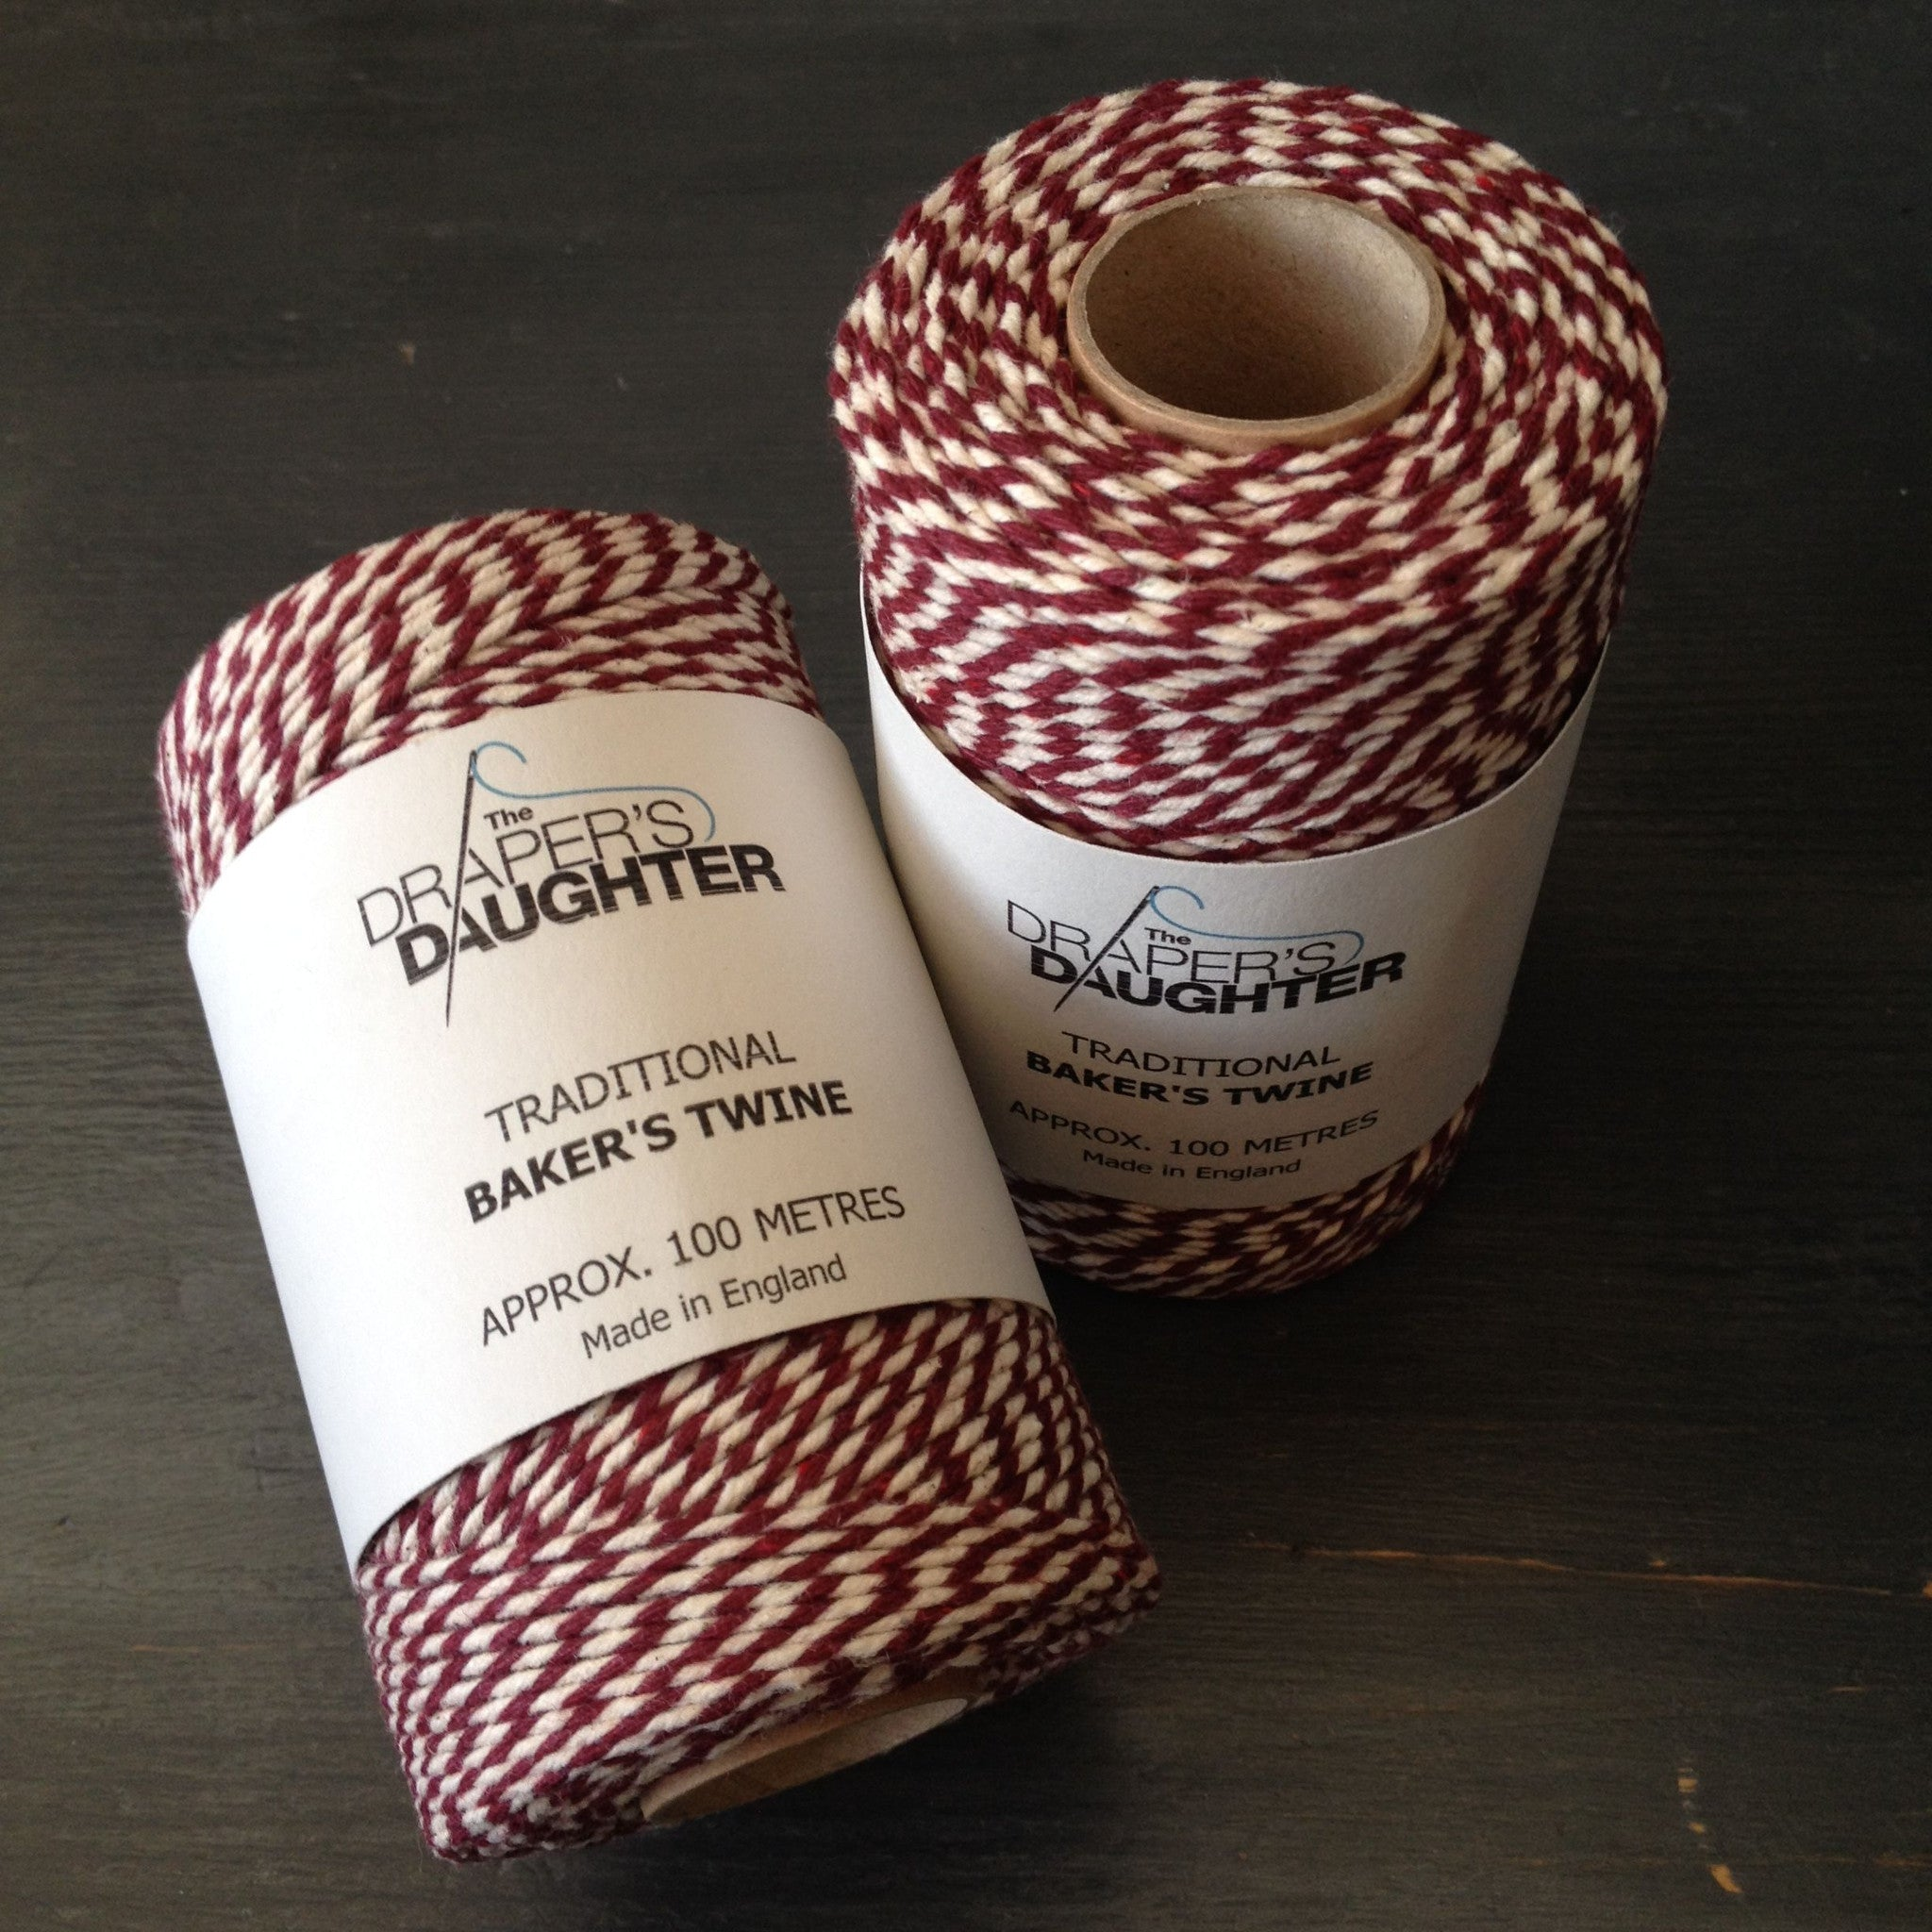 The Draper's Daughter Traditional Baker's Twine in Burgundy